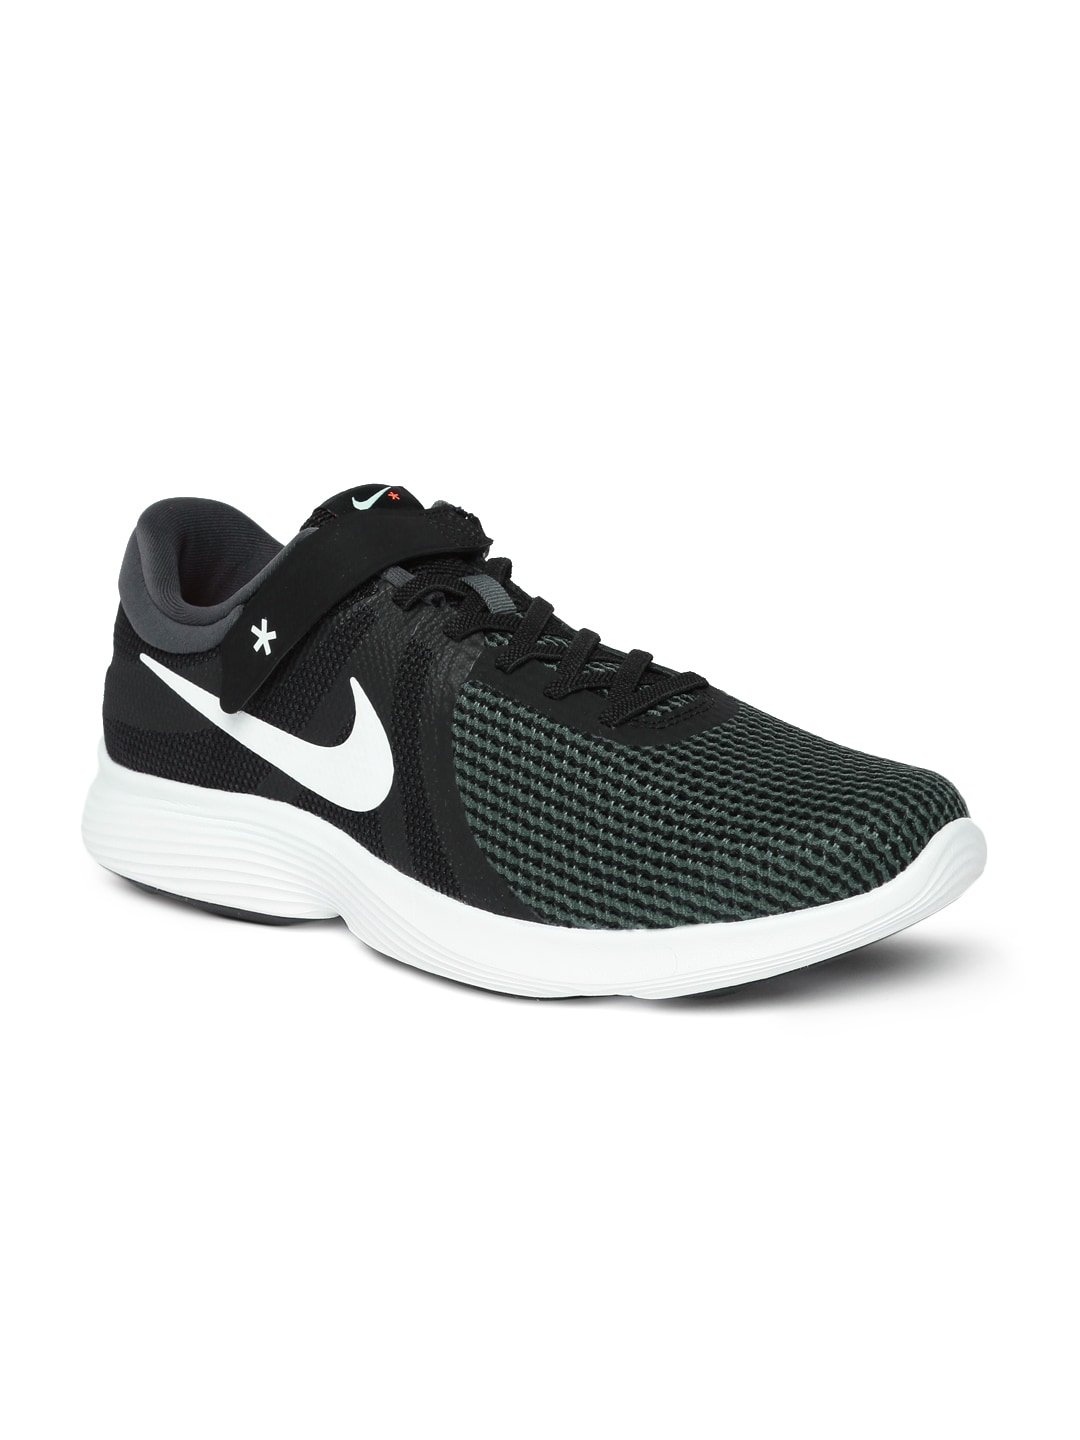 cheap for discount fbf68 99883 Nike Atmosphere Sports Shoes - Buy Nike Atmosphere Sports Shoes online in  India